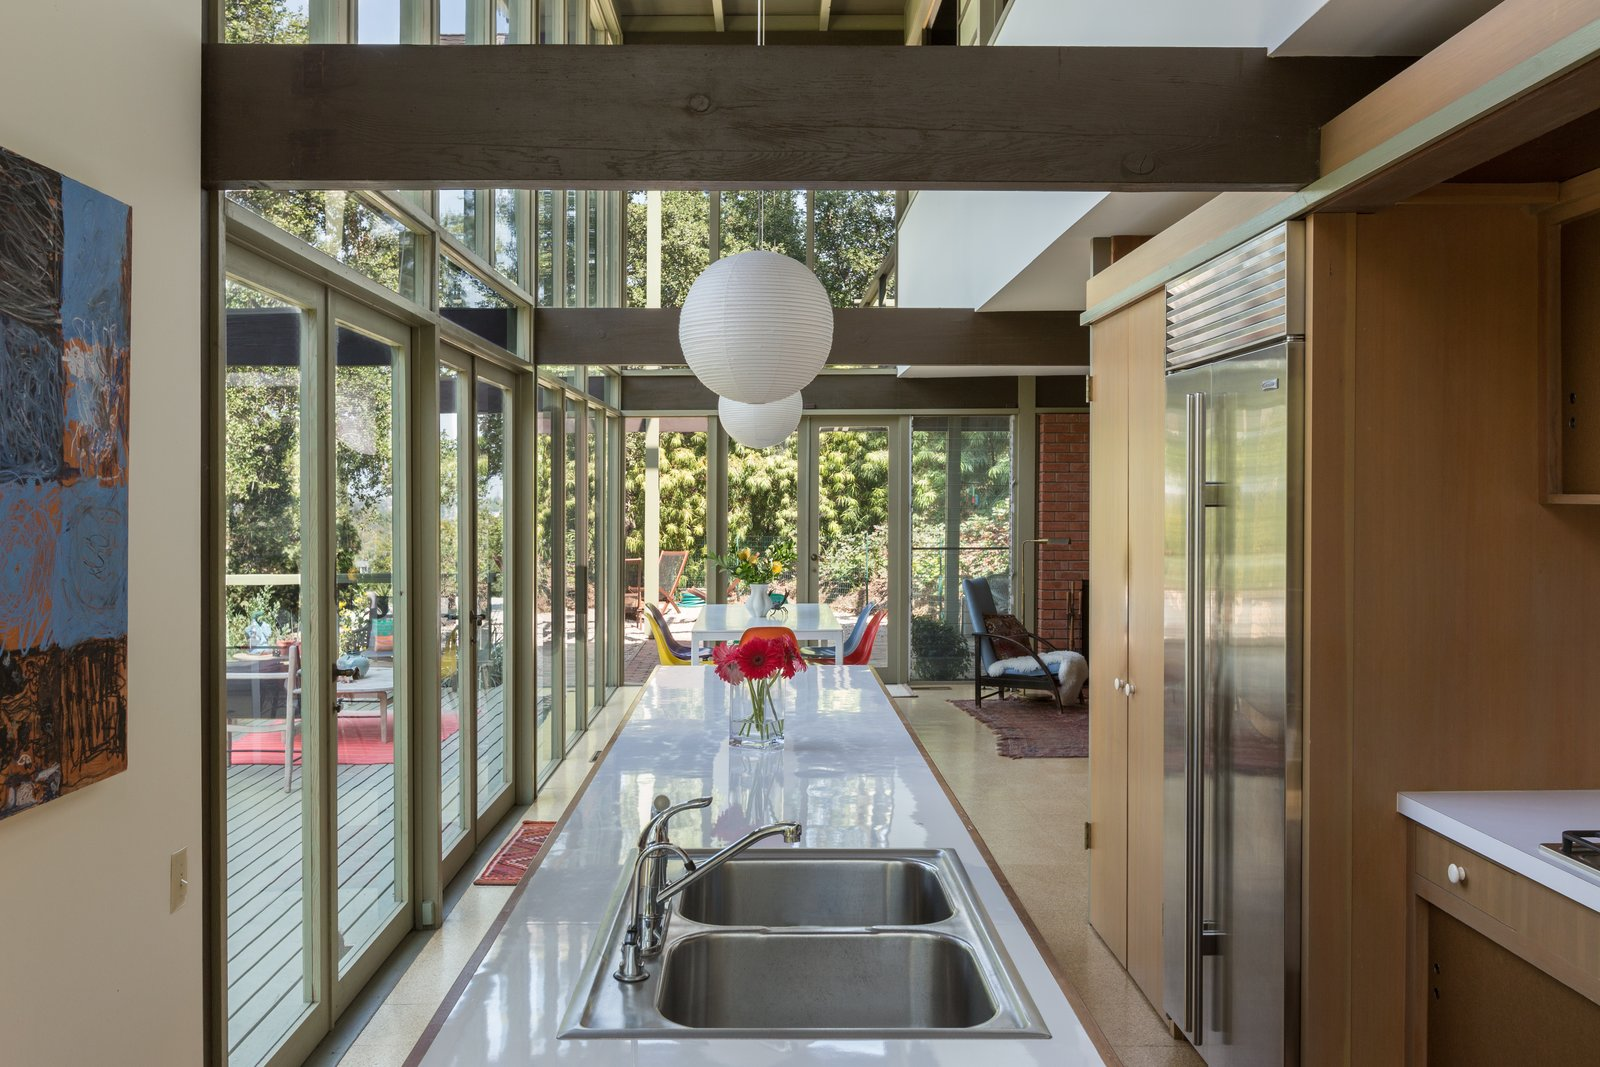 Kitchen, Laminate Counter, Drop In Sink, Refrigerator, Wood Cabinet, and Pendant Lighting The open layout flows from the kitchen into the dining and living areas.  Best Photos from Mad Men Producer Puts His Pasadena Midcentury Up For Auction Starting at $1.7M